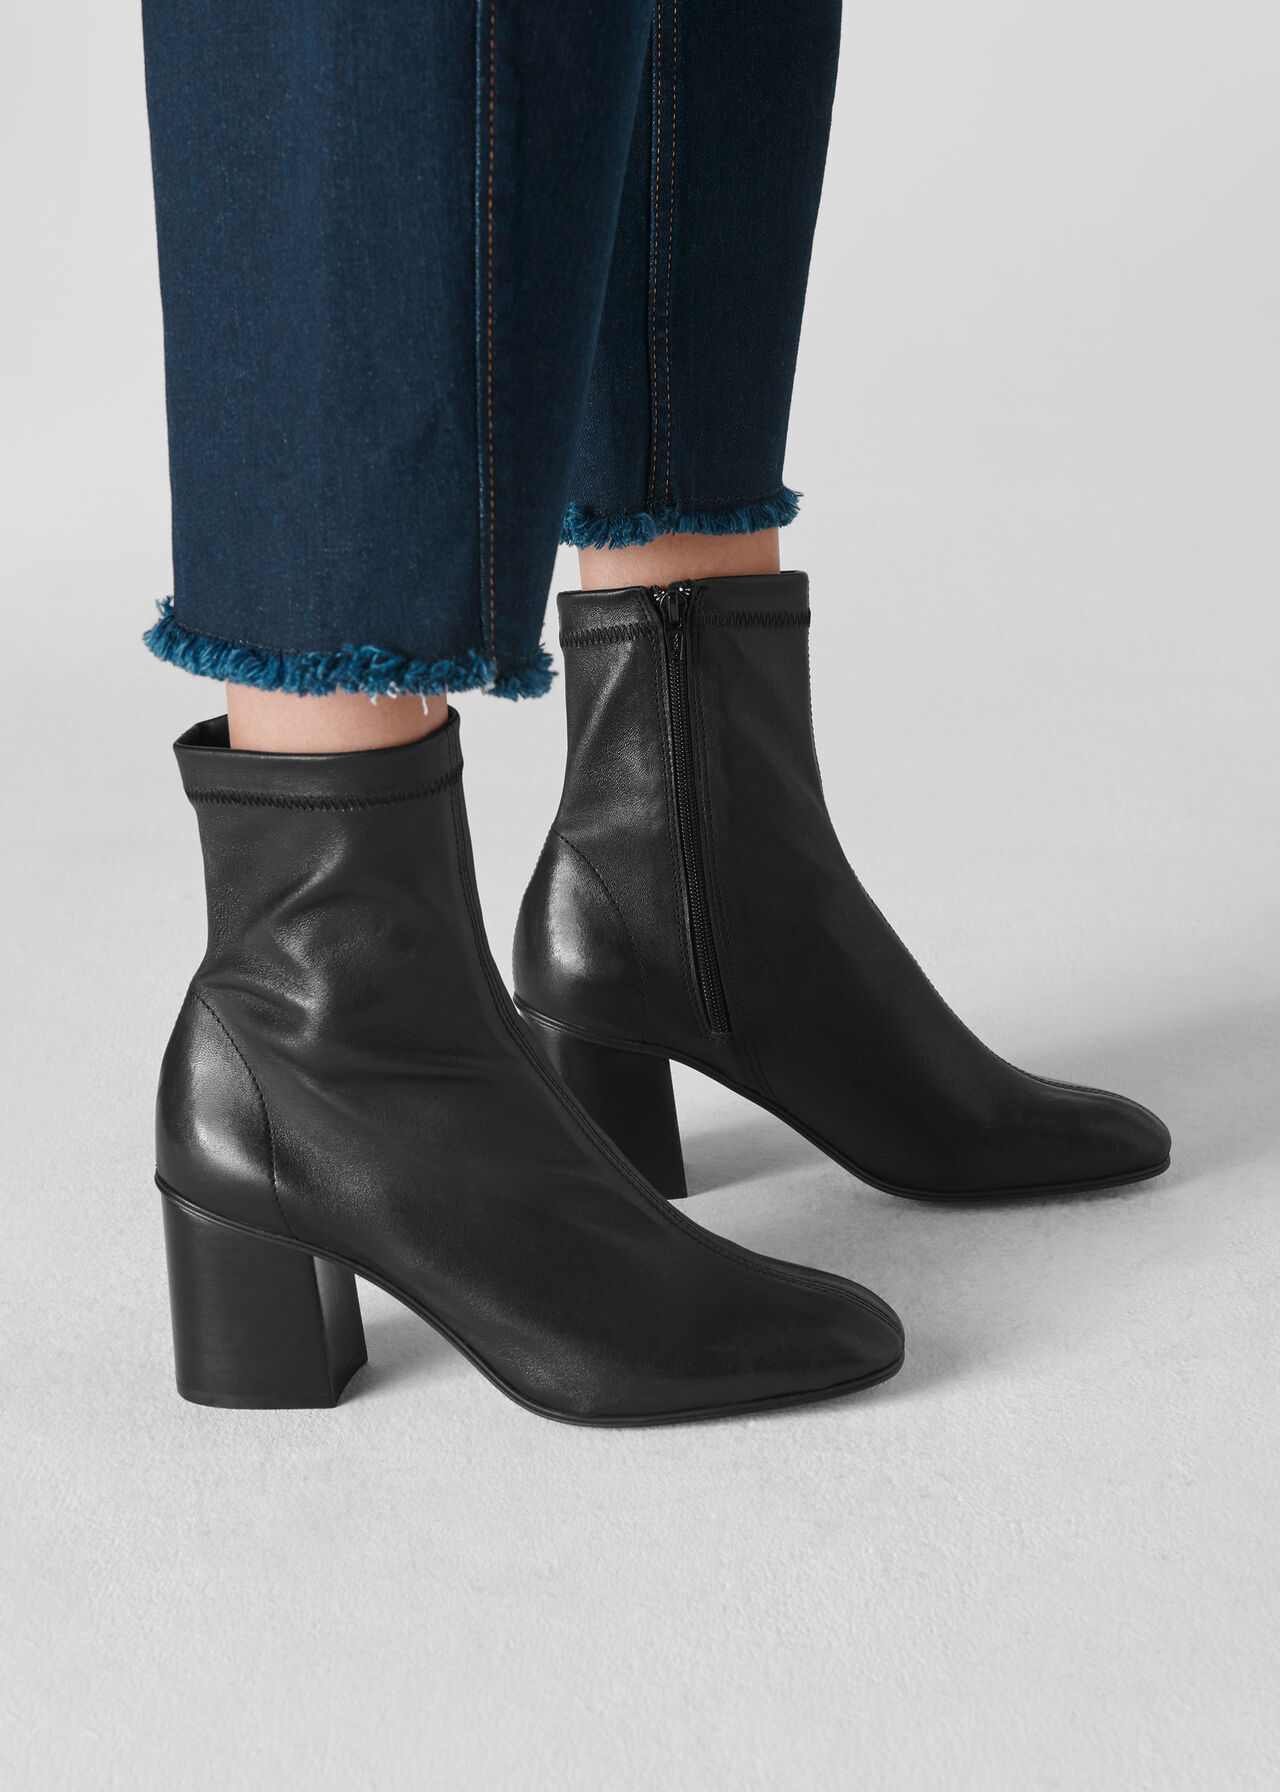 Vianna Sock Boot Black